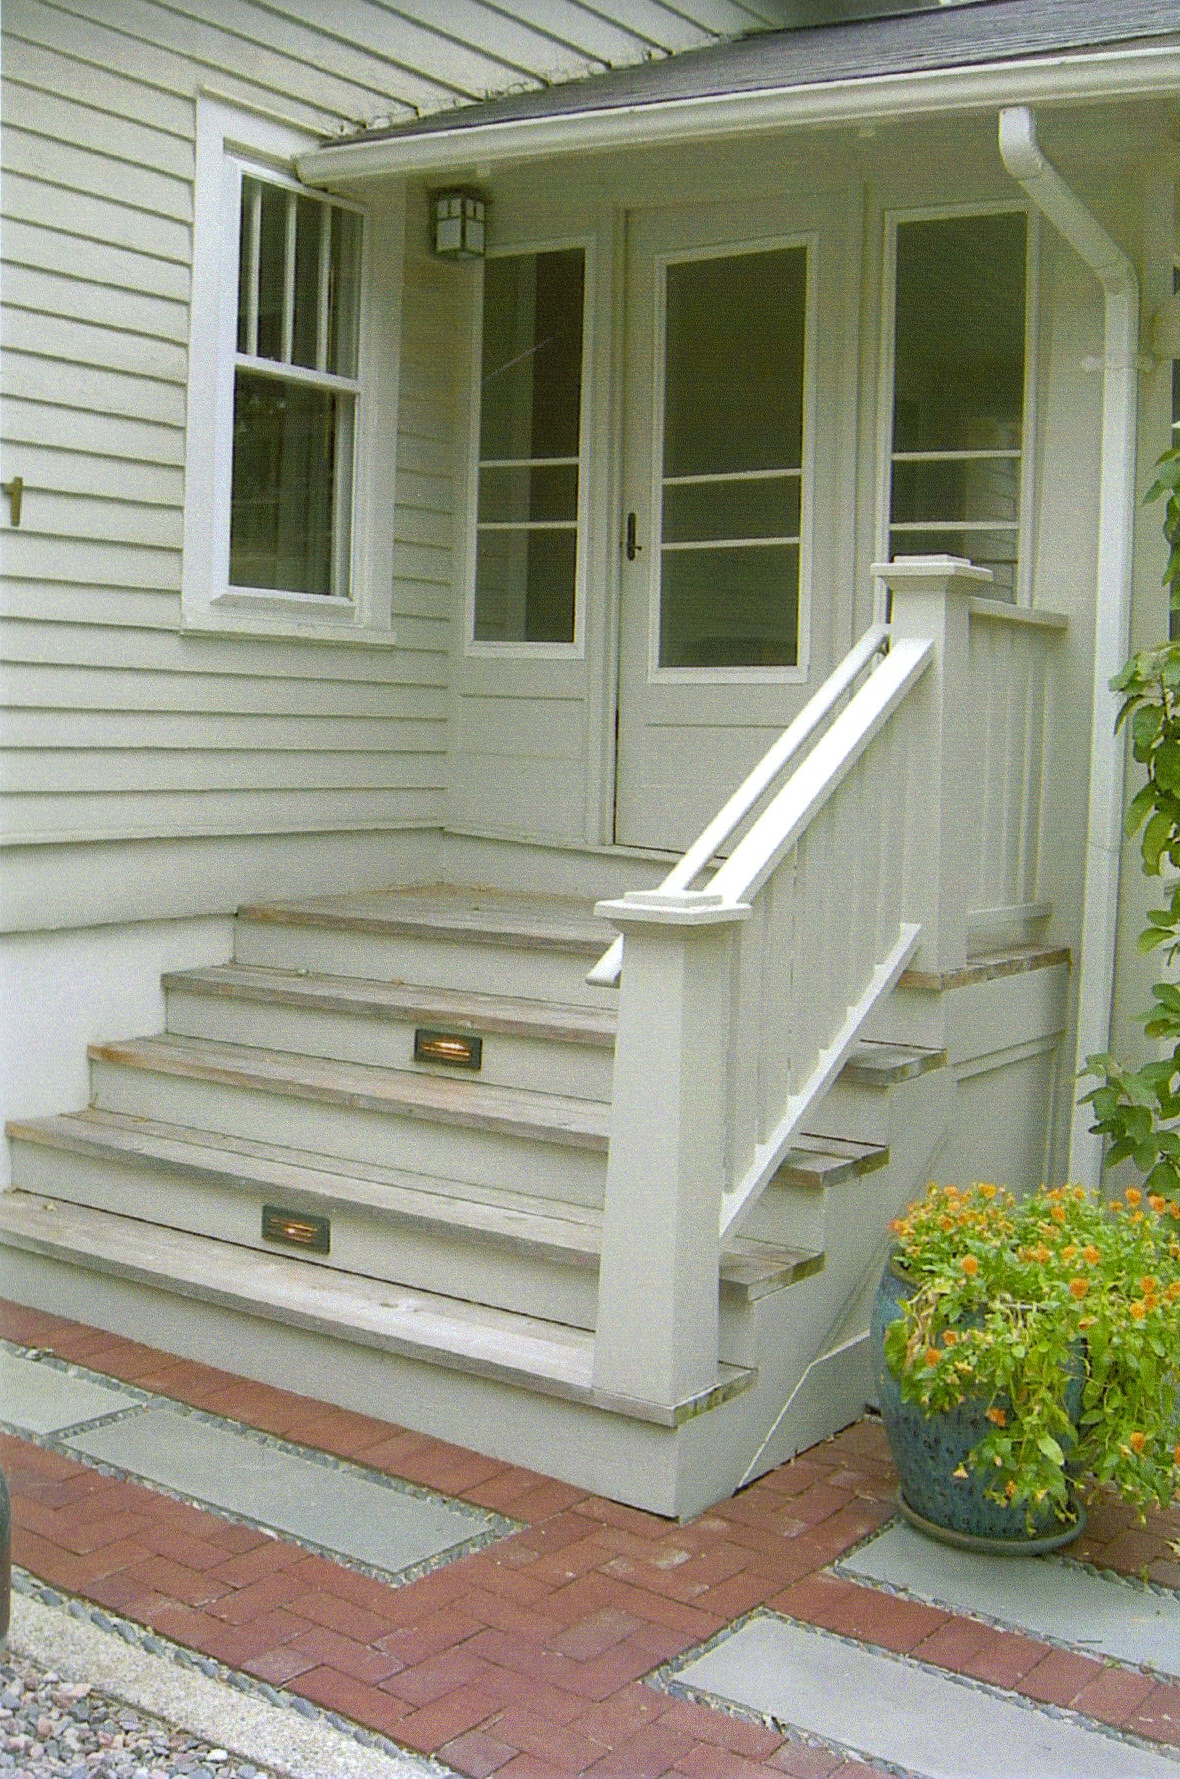 Bungalow stair railings on pinterest bungalows bungalow porch and victorian porch - Porch design ideas ...